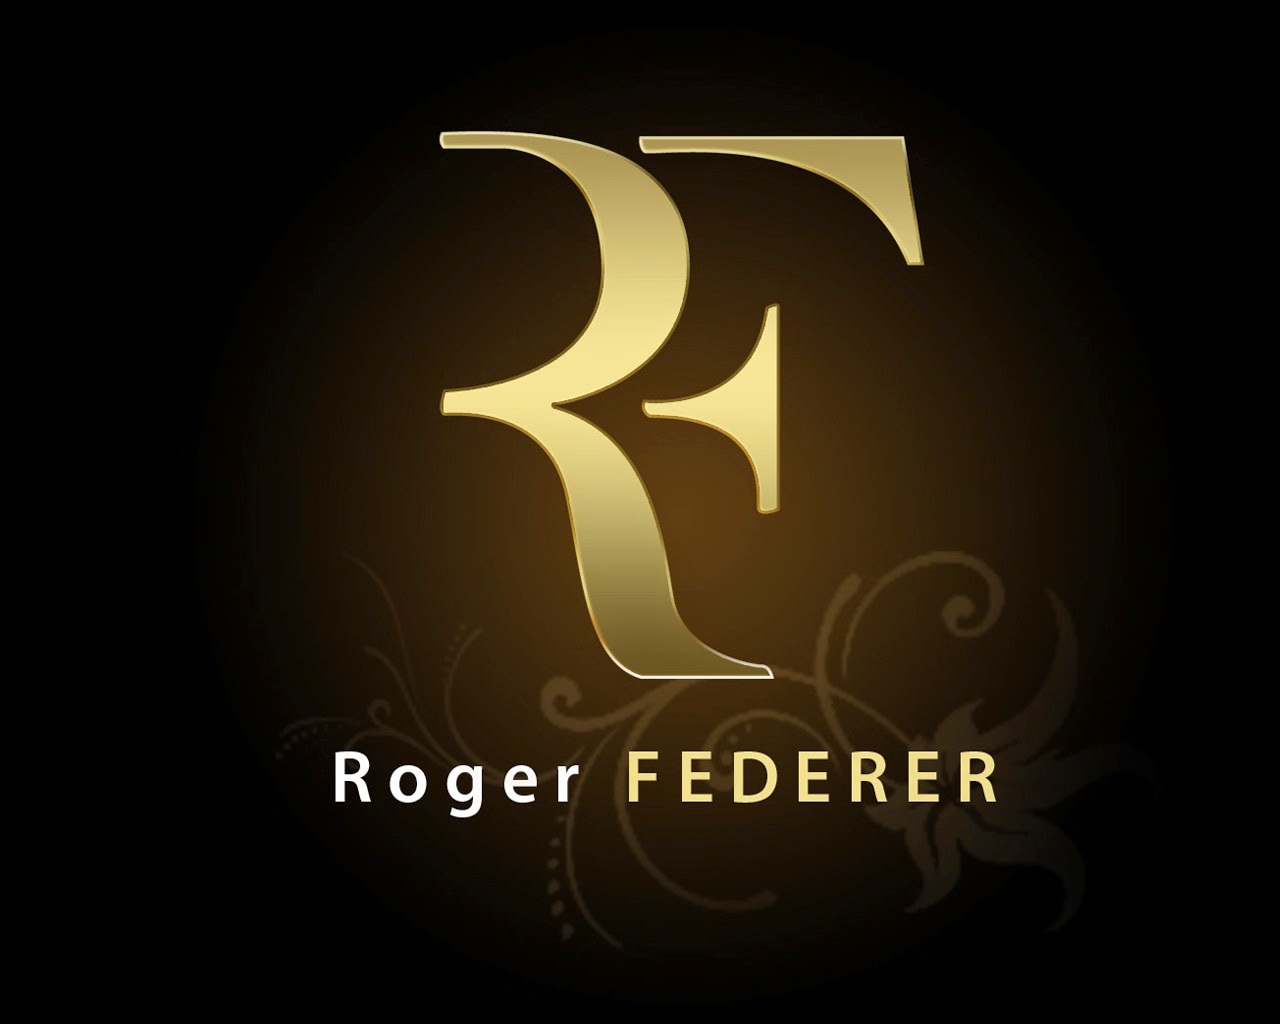 All About Logo: Roger Federer (RF) Logo